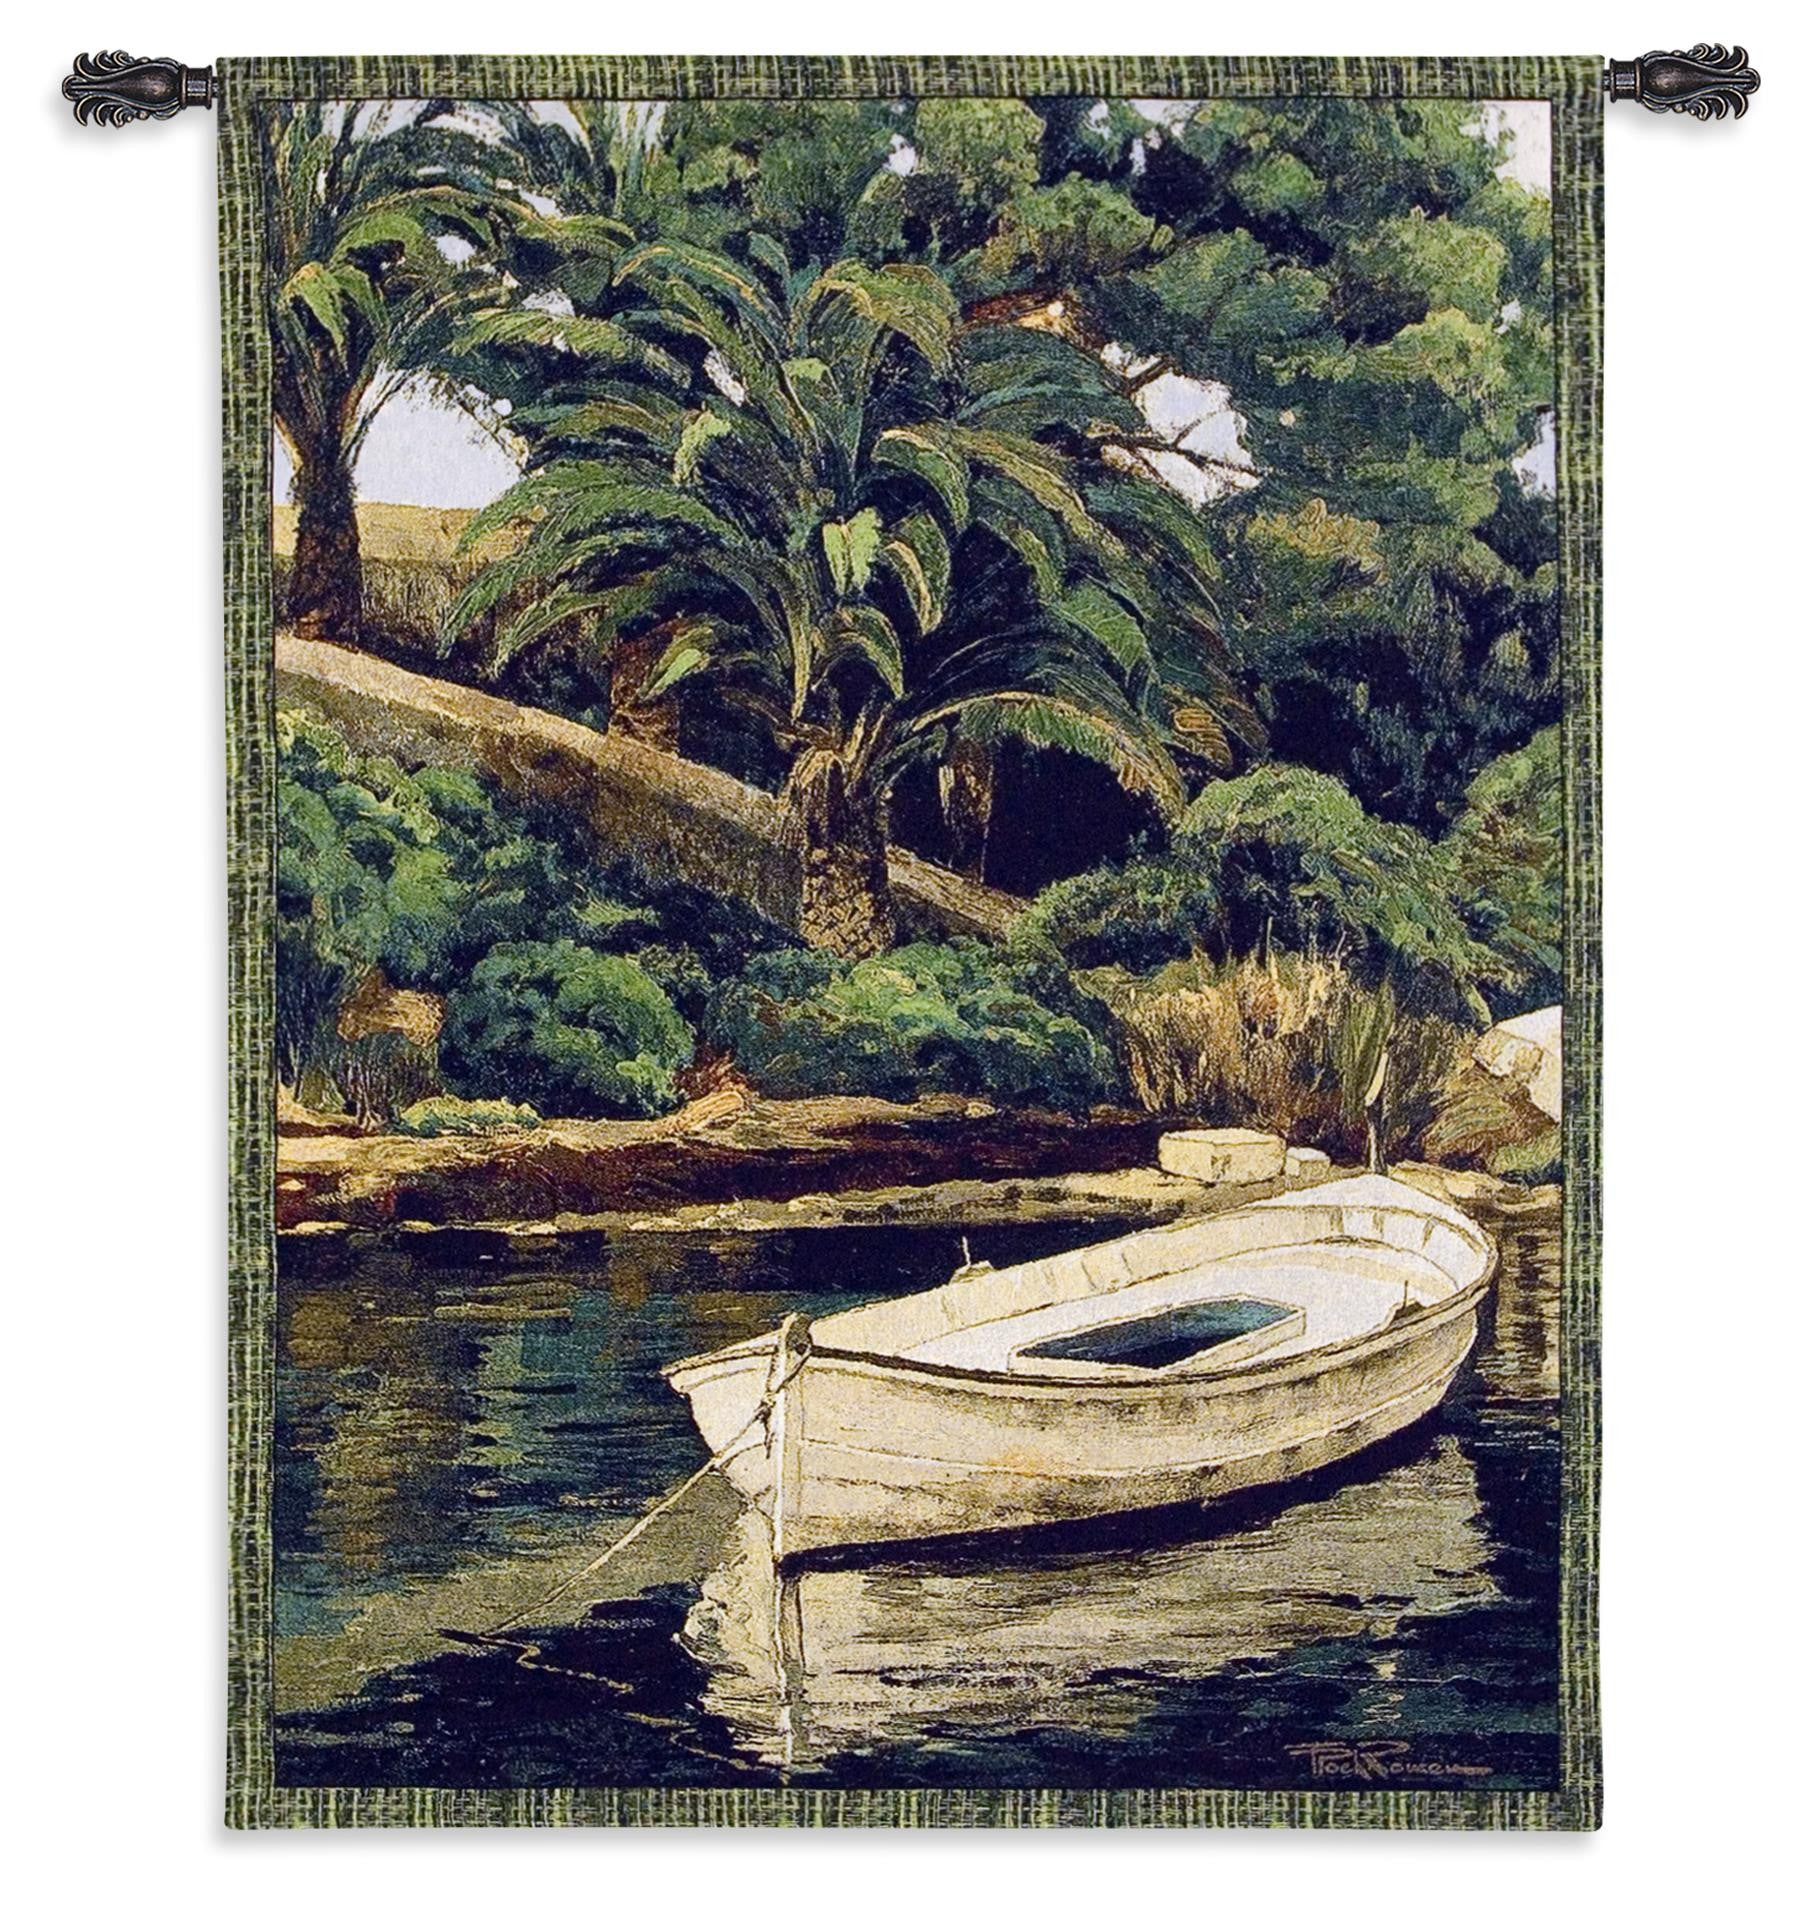 Barca y Pameras Tapestry Wall Hanging